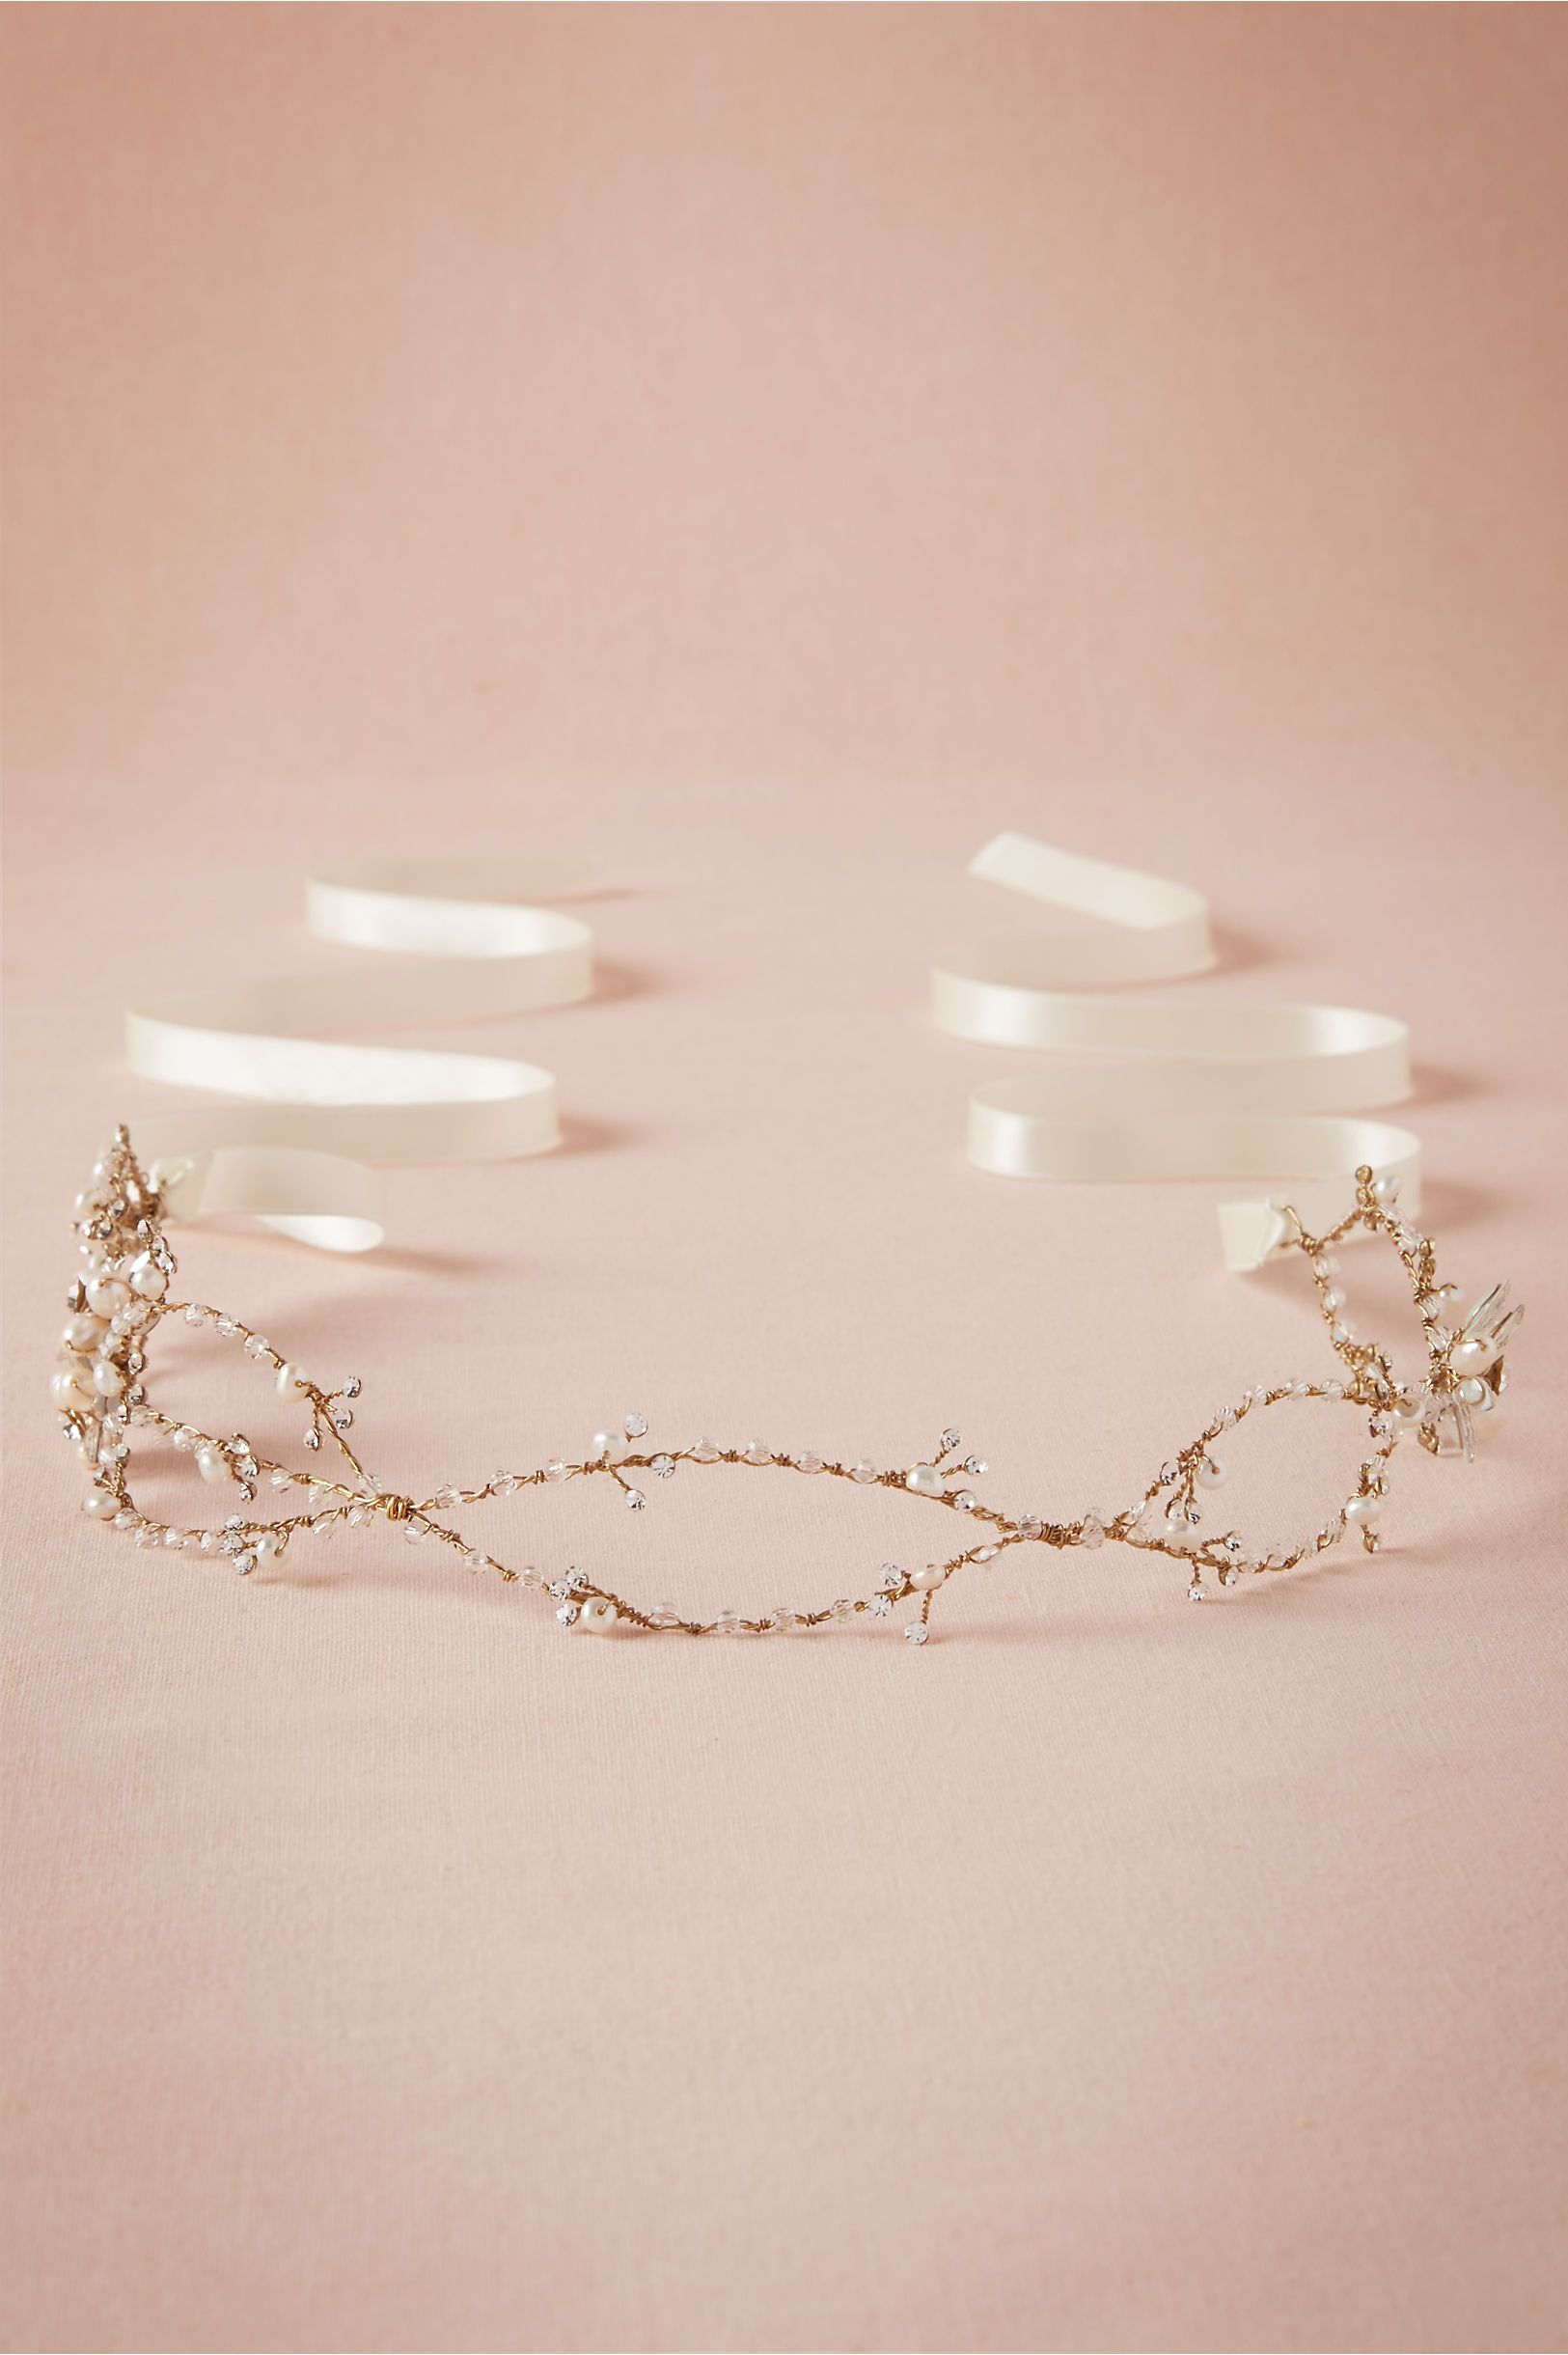 trellis halo hair jewelry wedding hair accessories